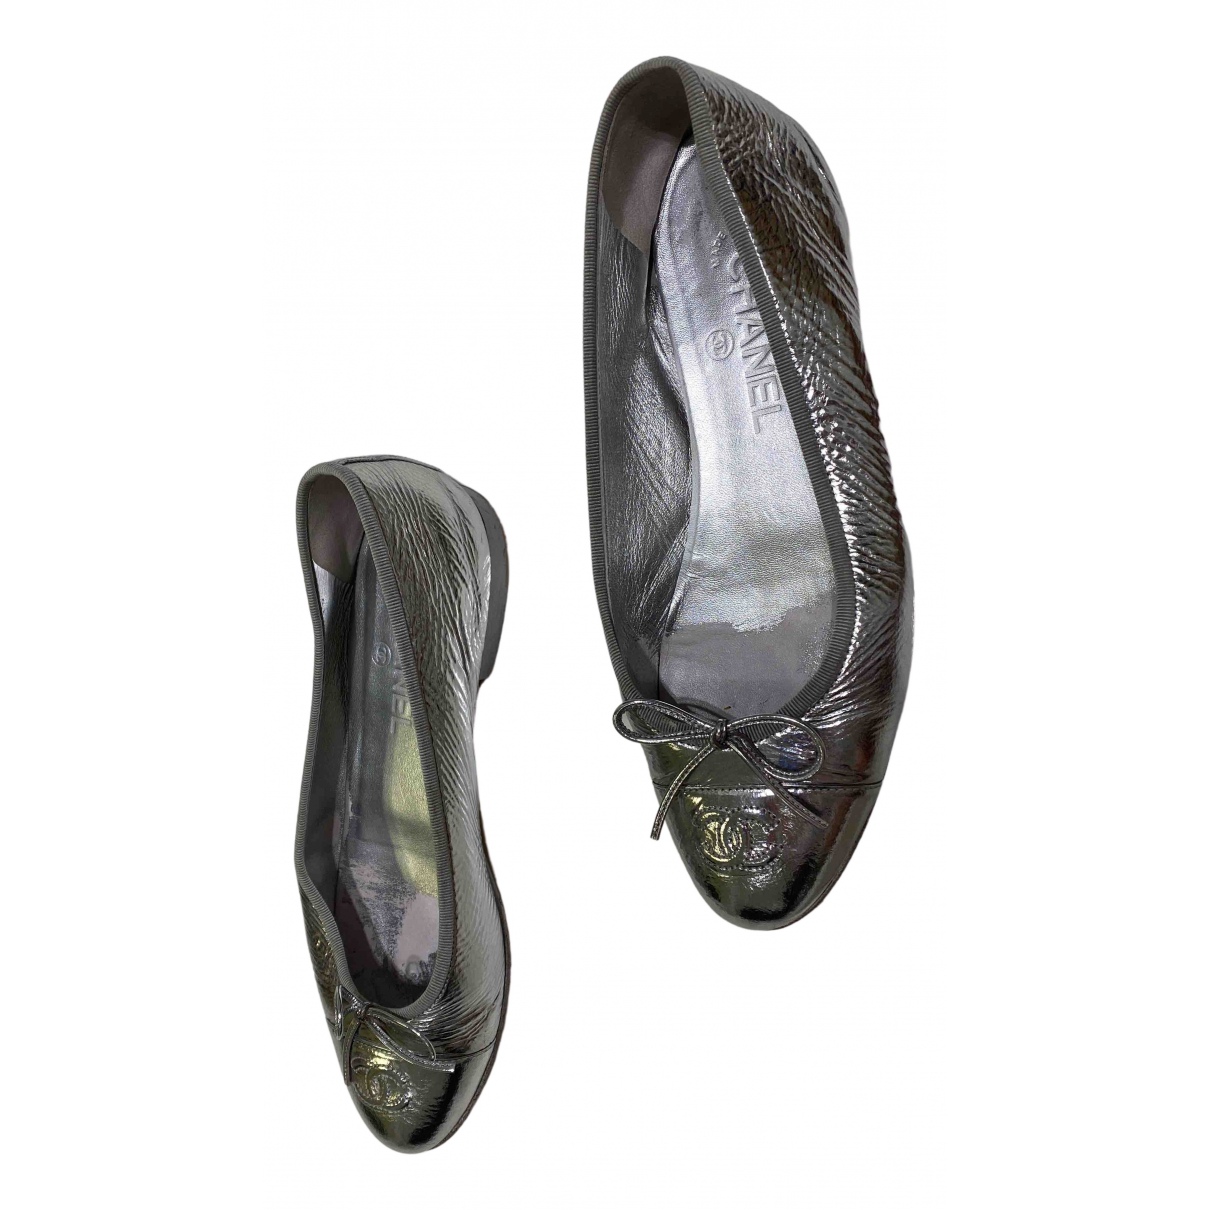 Chanel N Silver Leather Flats for Women 39 EU